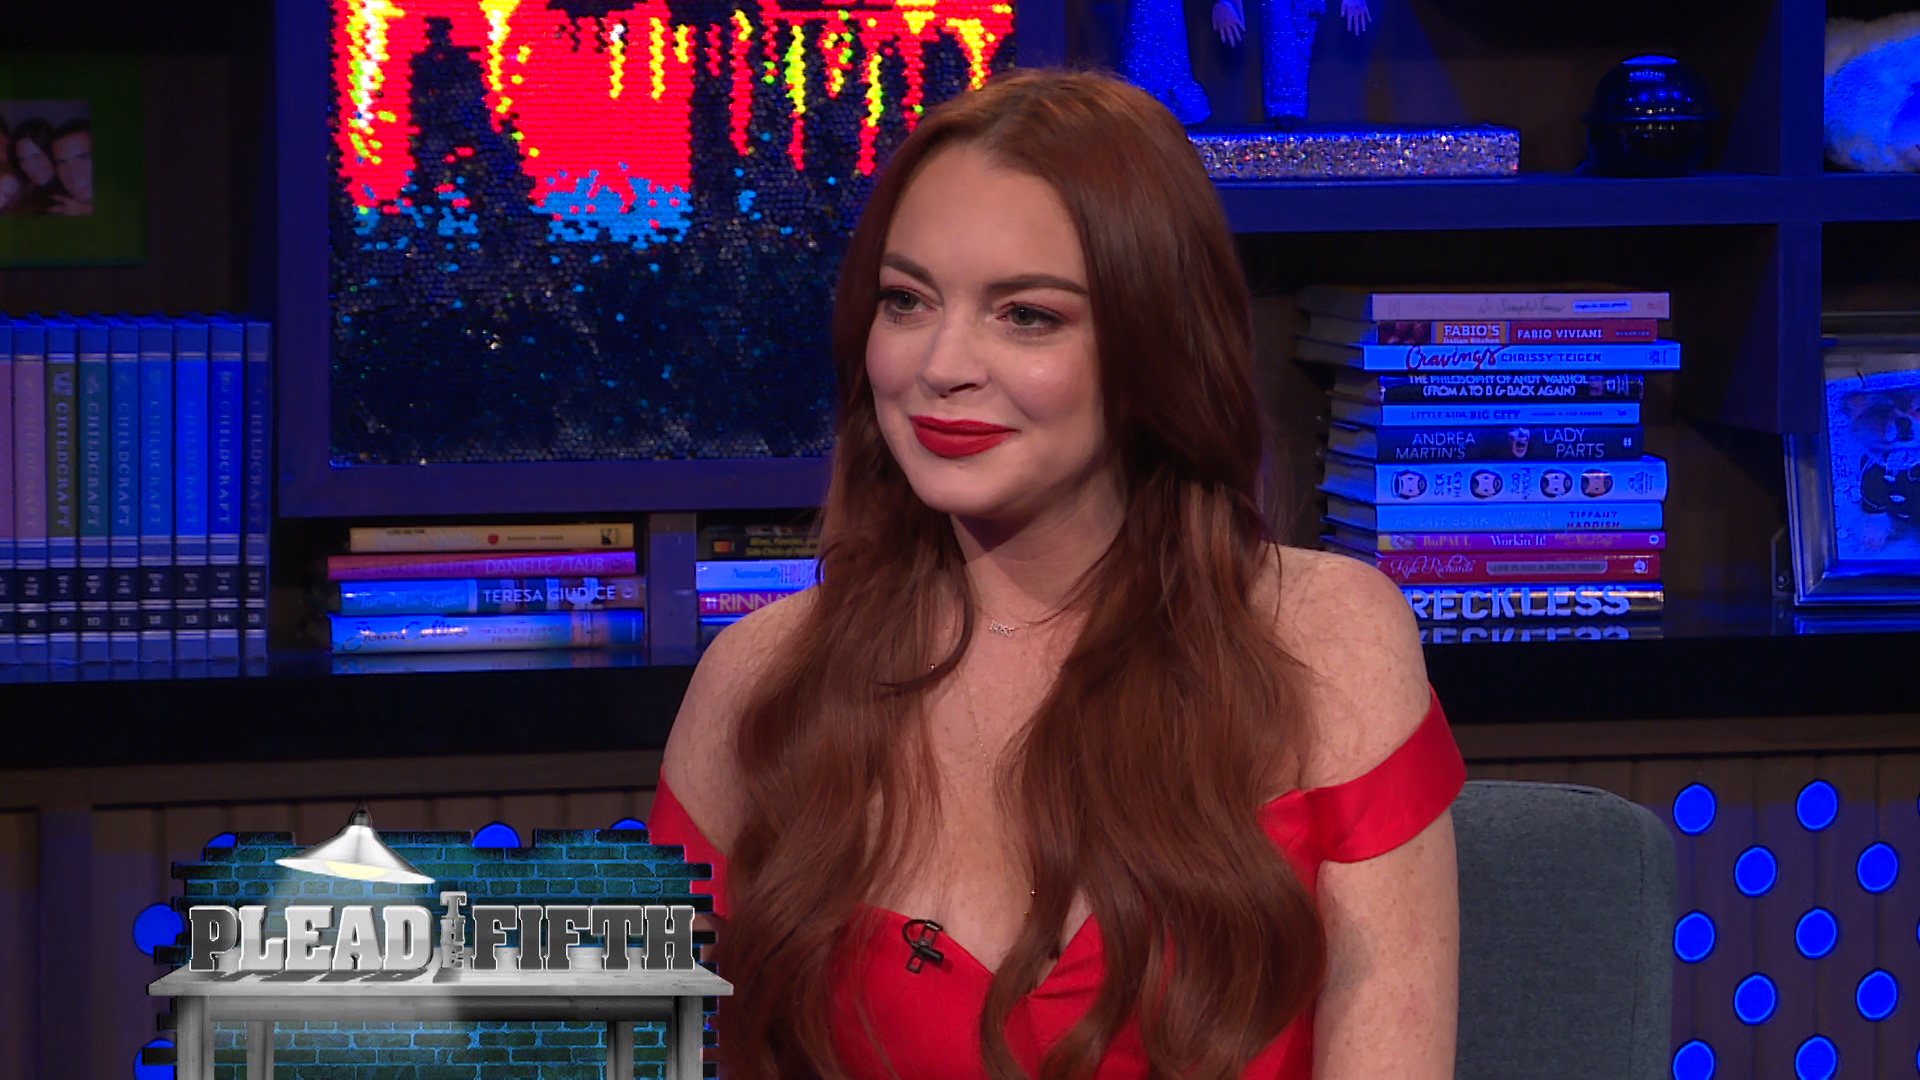 Lindsay Lohan Addresses Her Instagram Feud With Kim Kardashian on 'WWHL'